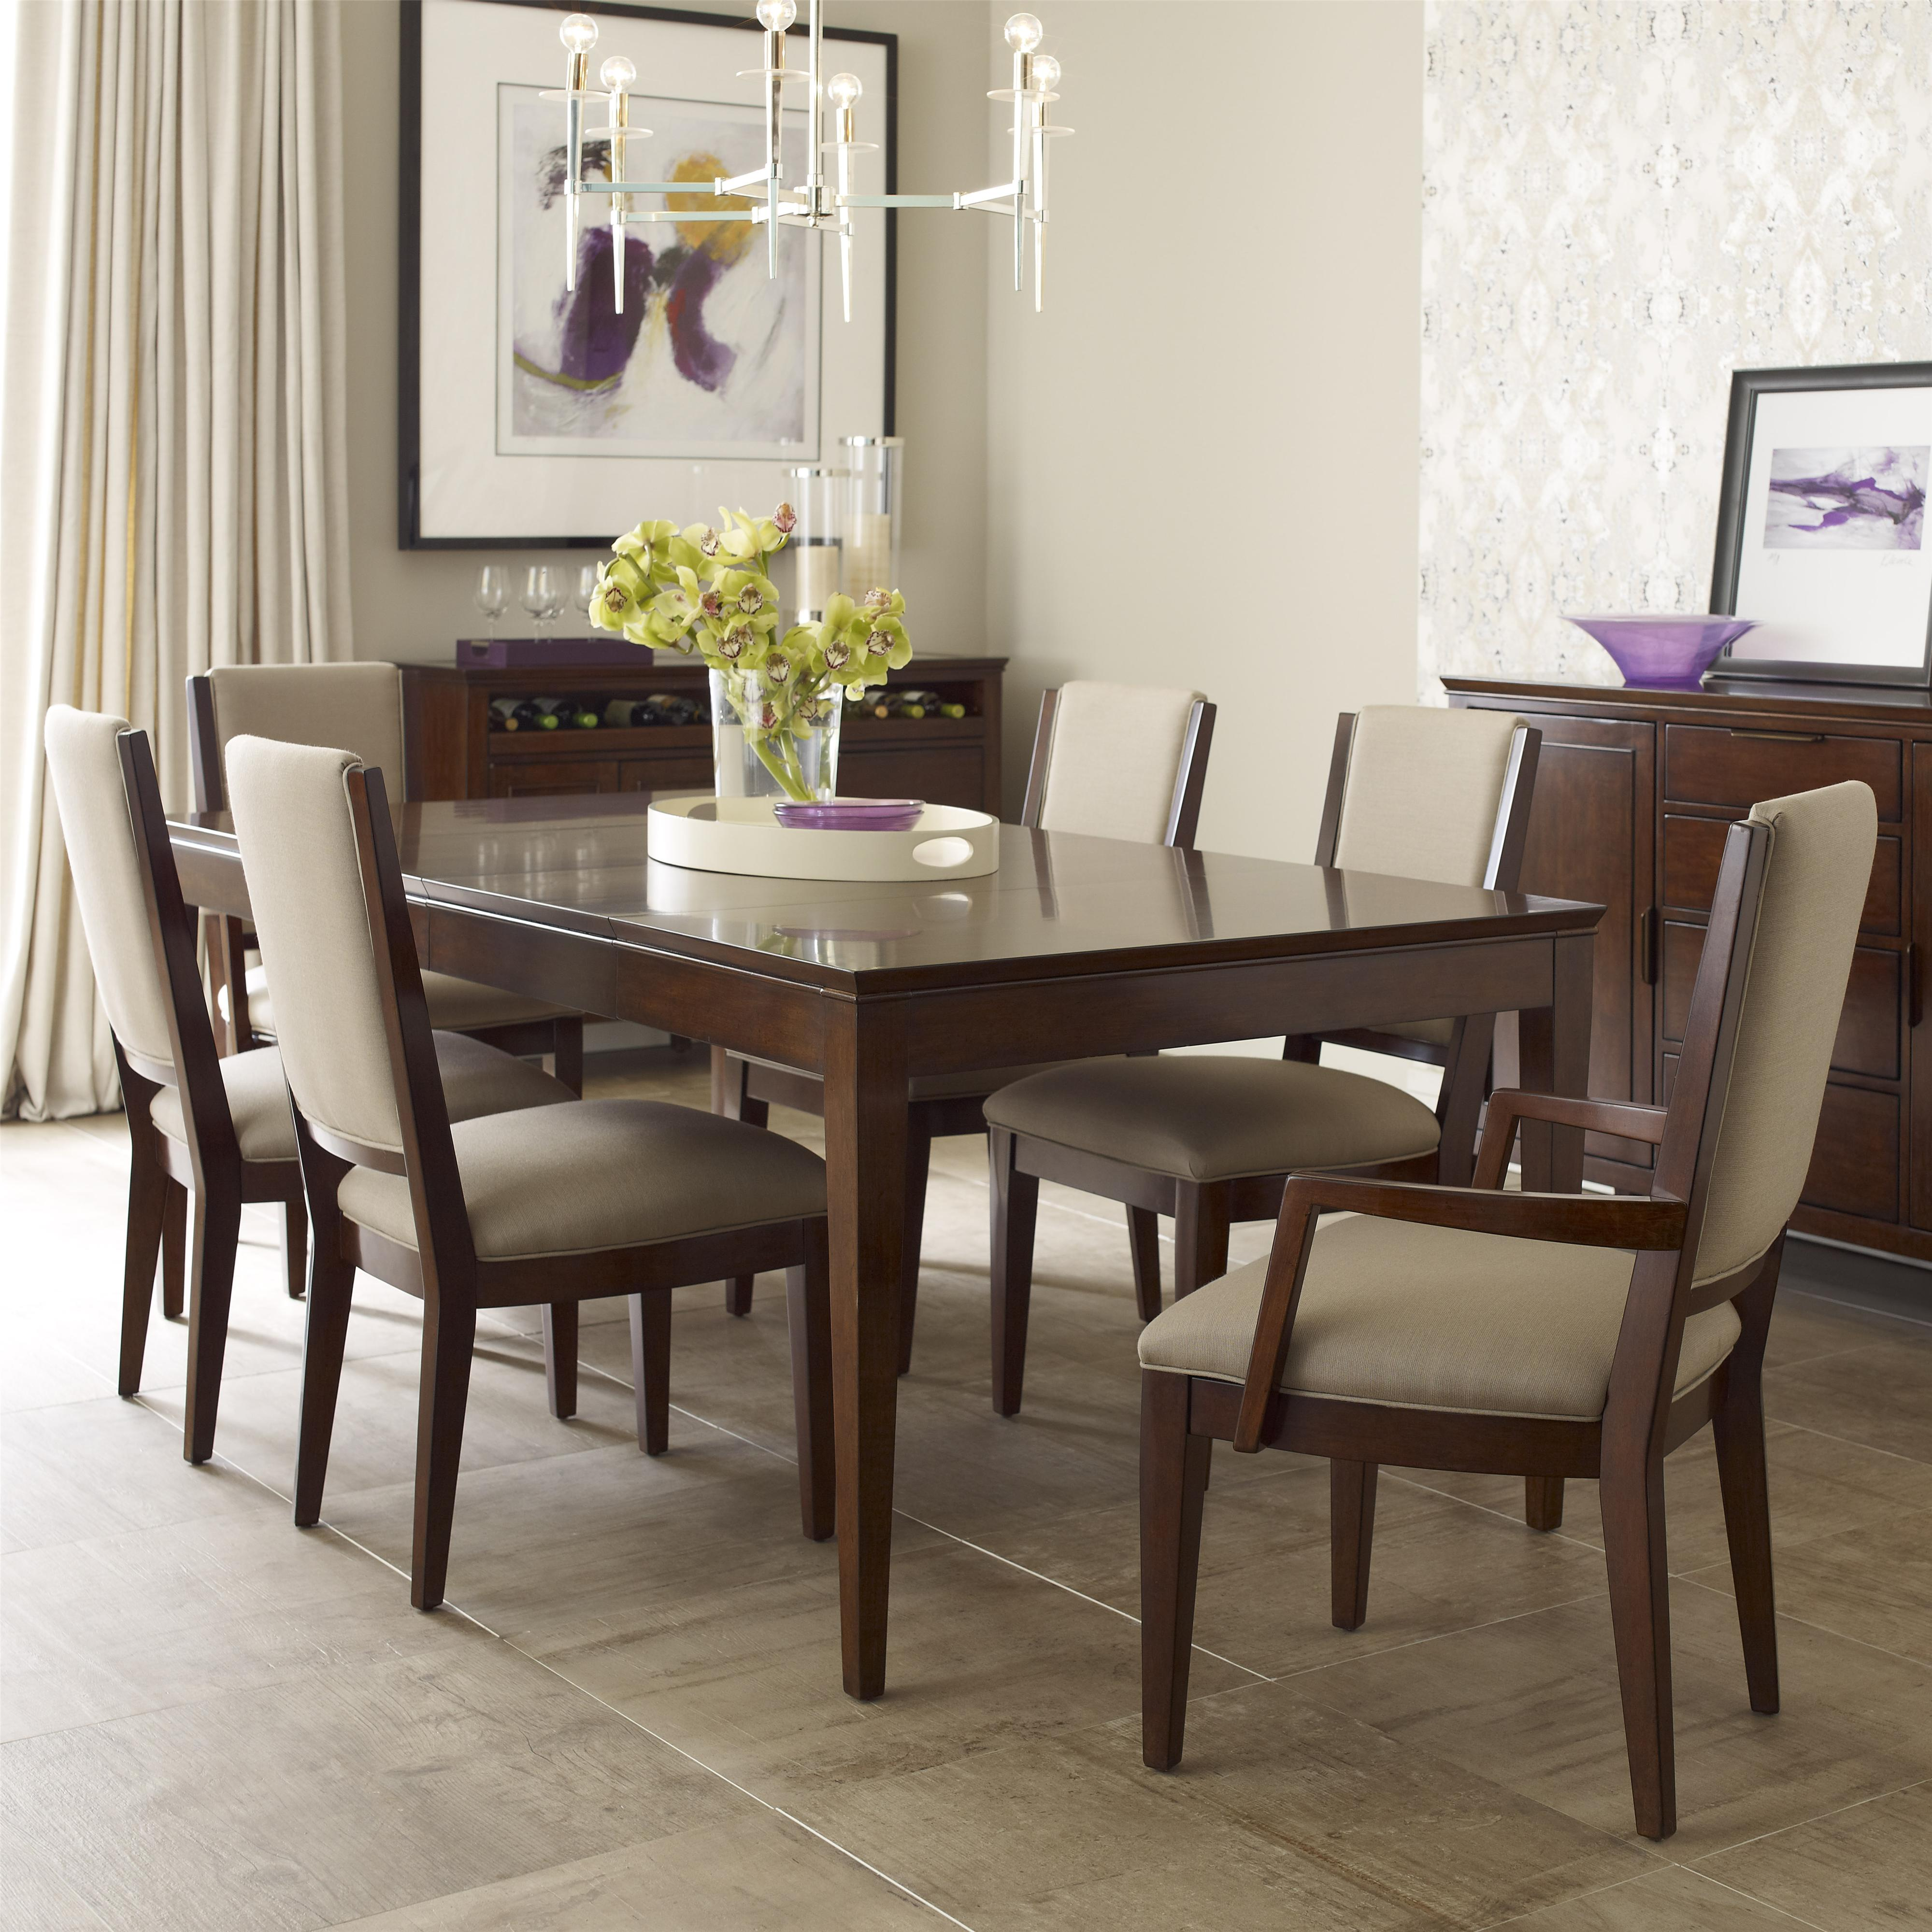 Kincaid Furniture Elise Seven Piece Dining Set with